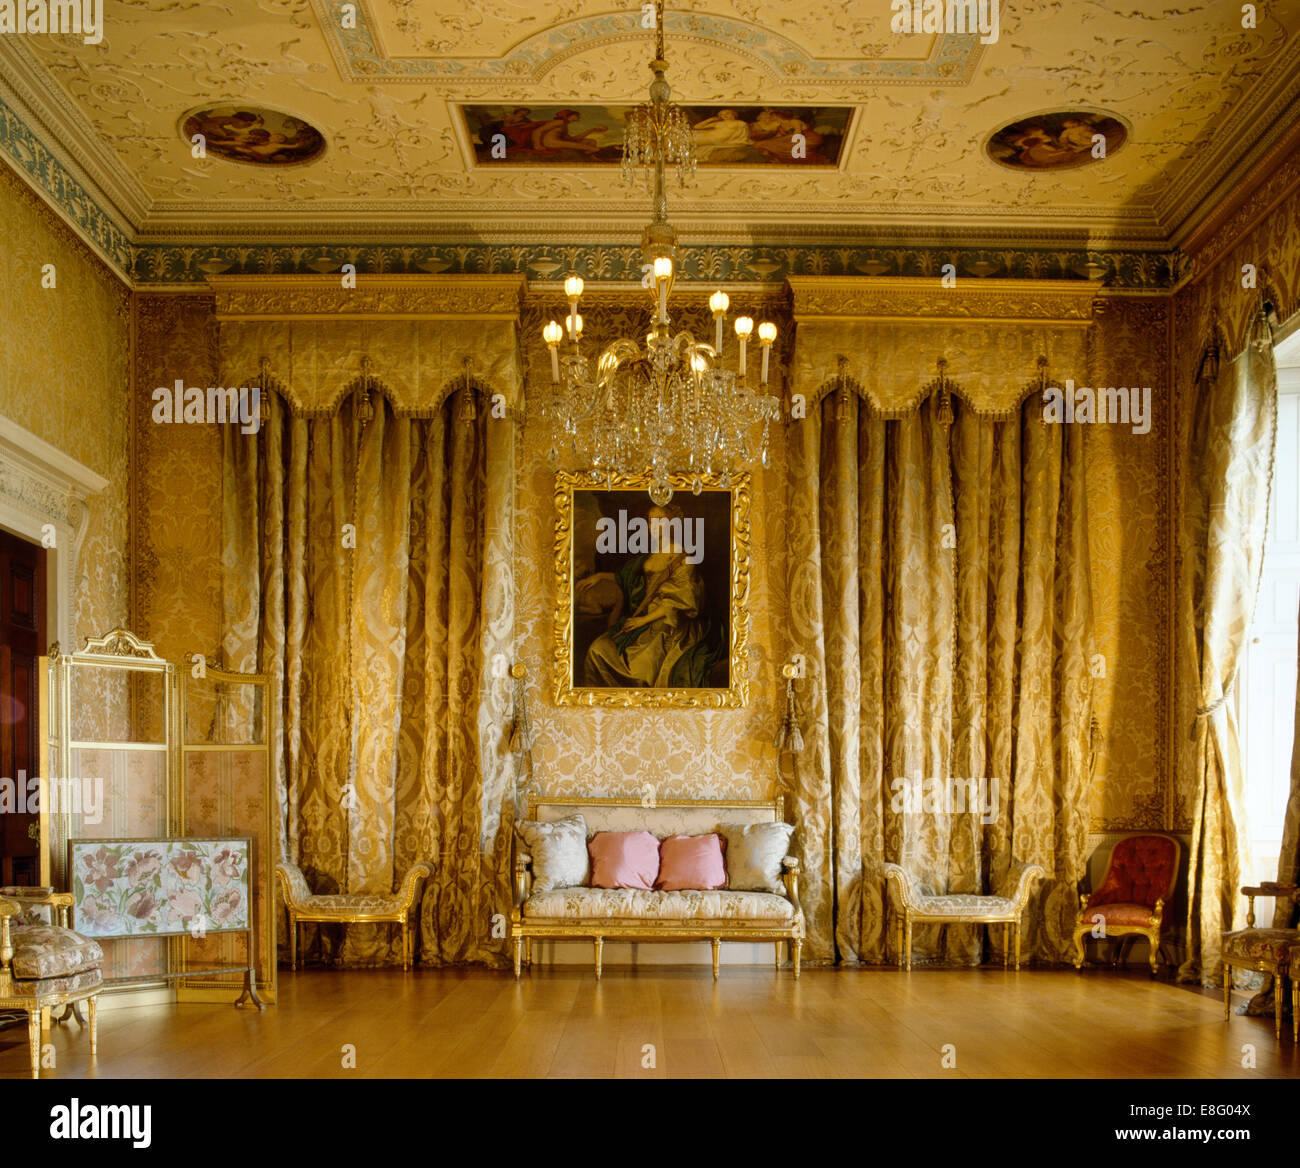 opulent furniture. Opulent Gold Curtains And Gilt Furniture In Stately Home Drawing Room